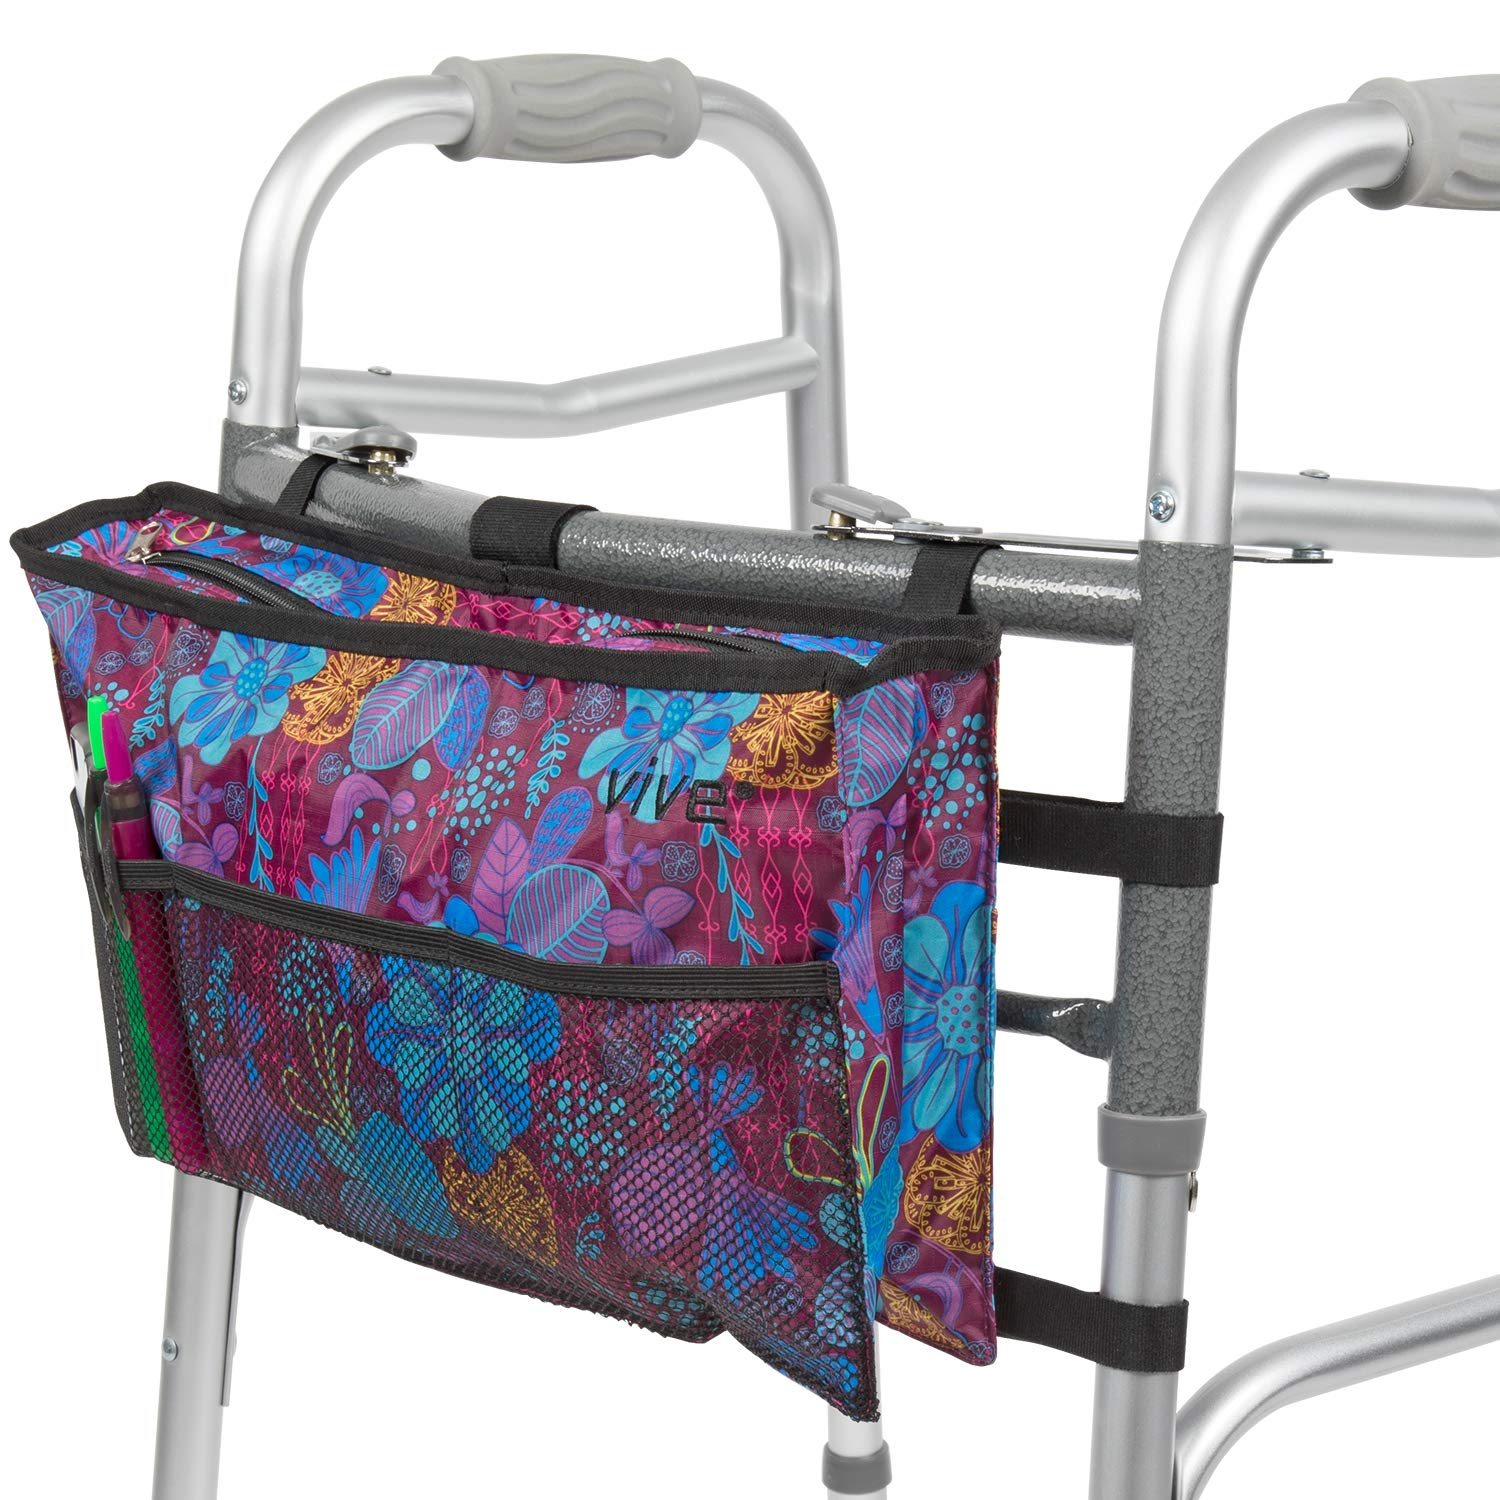 Baby Baby Safety & Health Alert Baby Shopping Trolley Bag Shrink-Proof